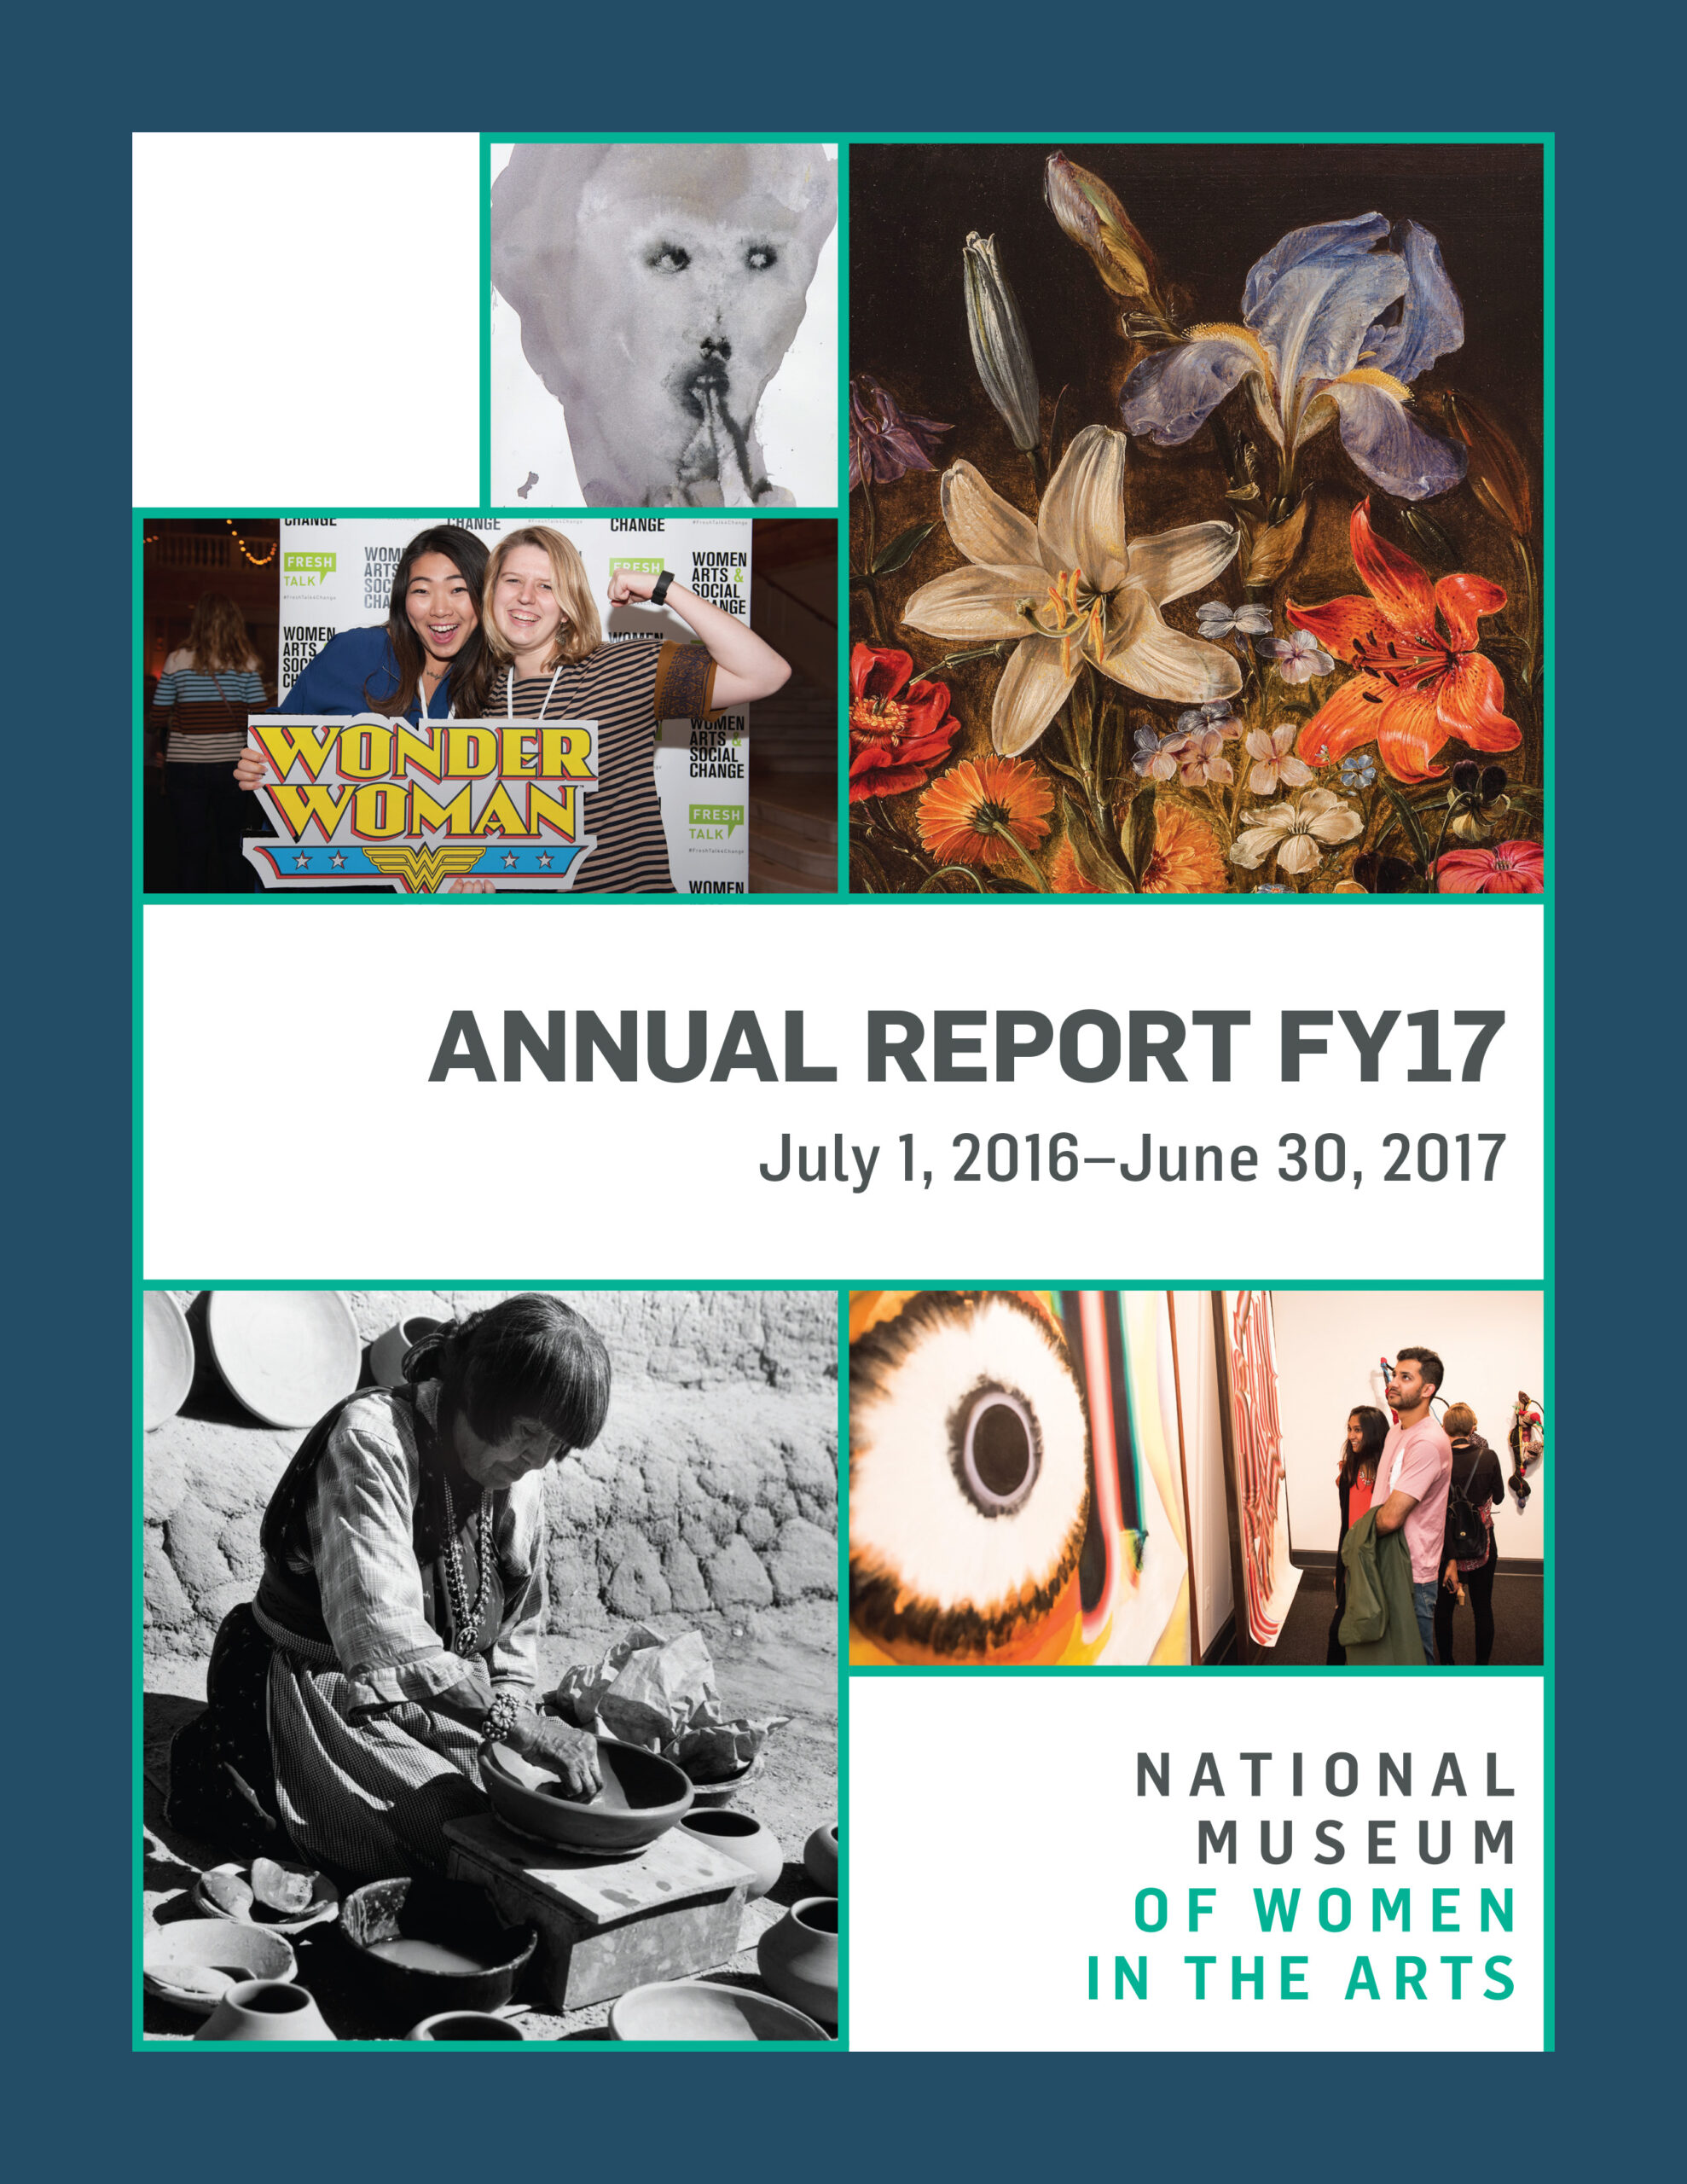 Cover of the 2017 annual report shows multiple images along with the NMWA logo and the text 'Annual Report FY17, July 1, 2016–June 30, 2017